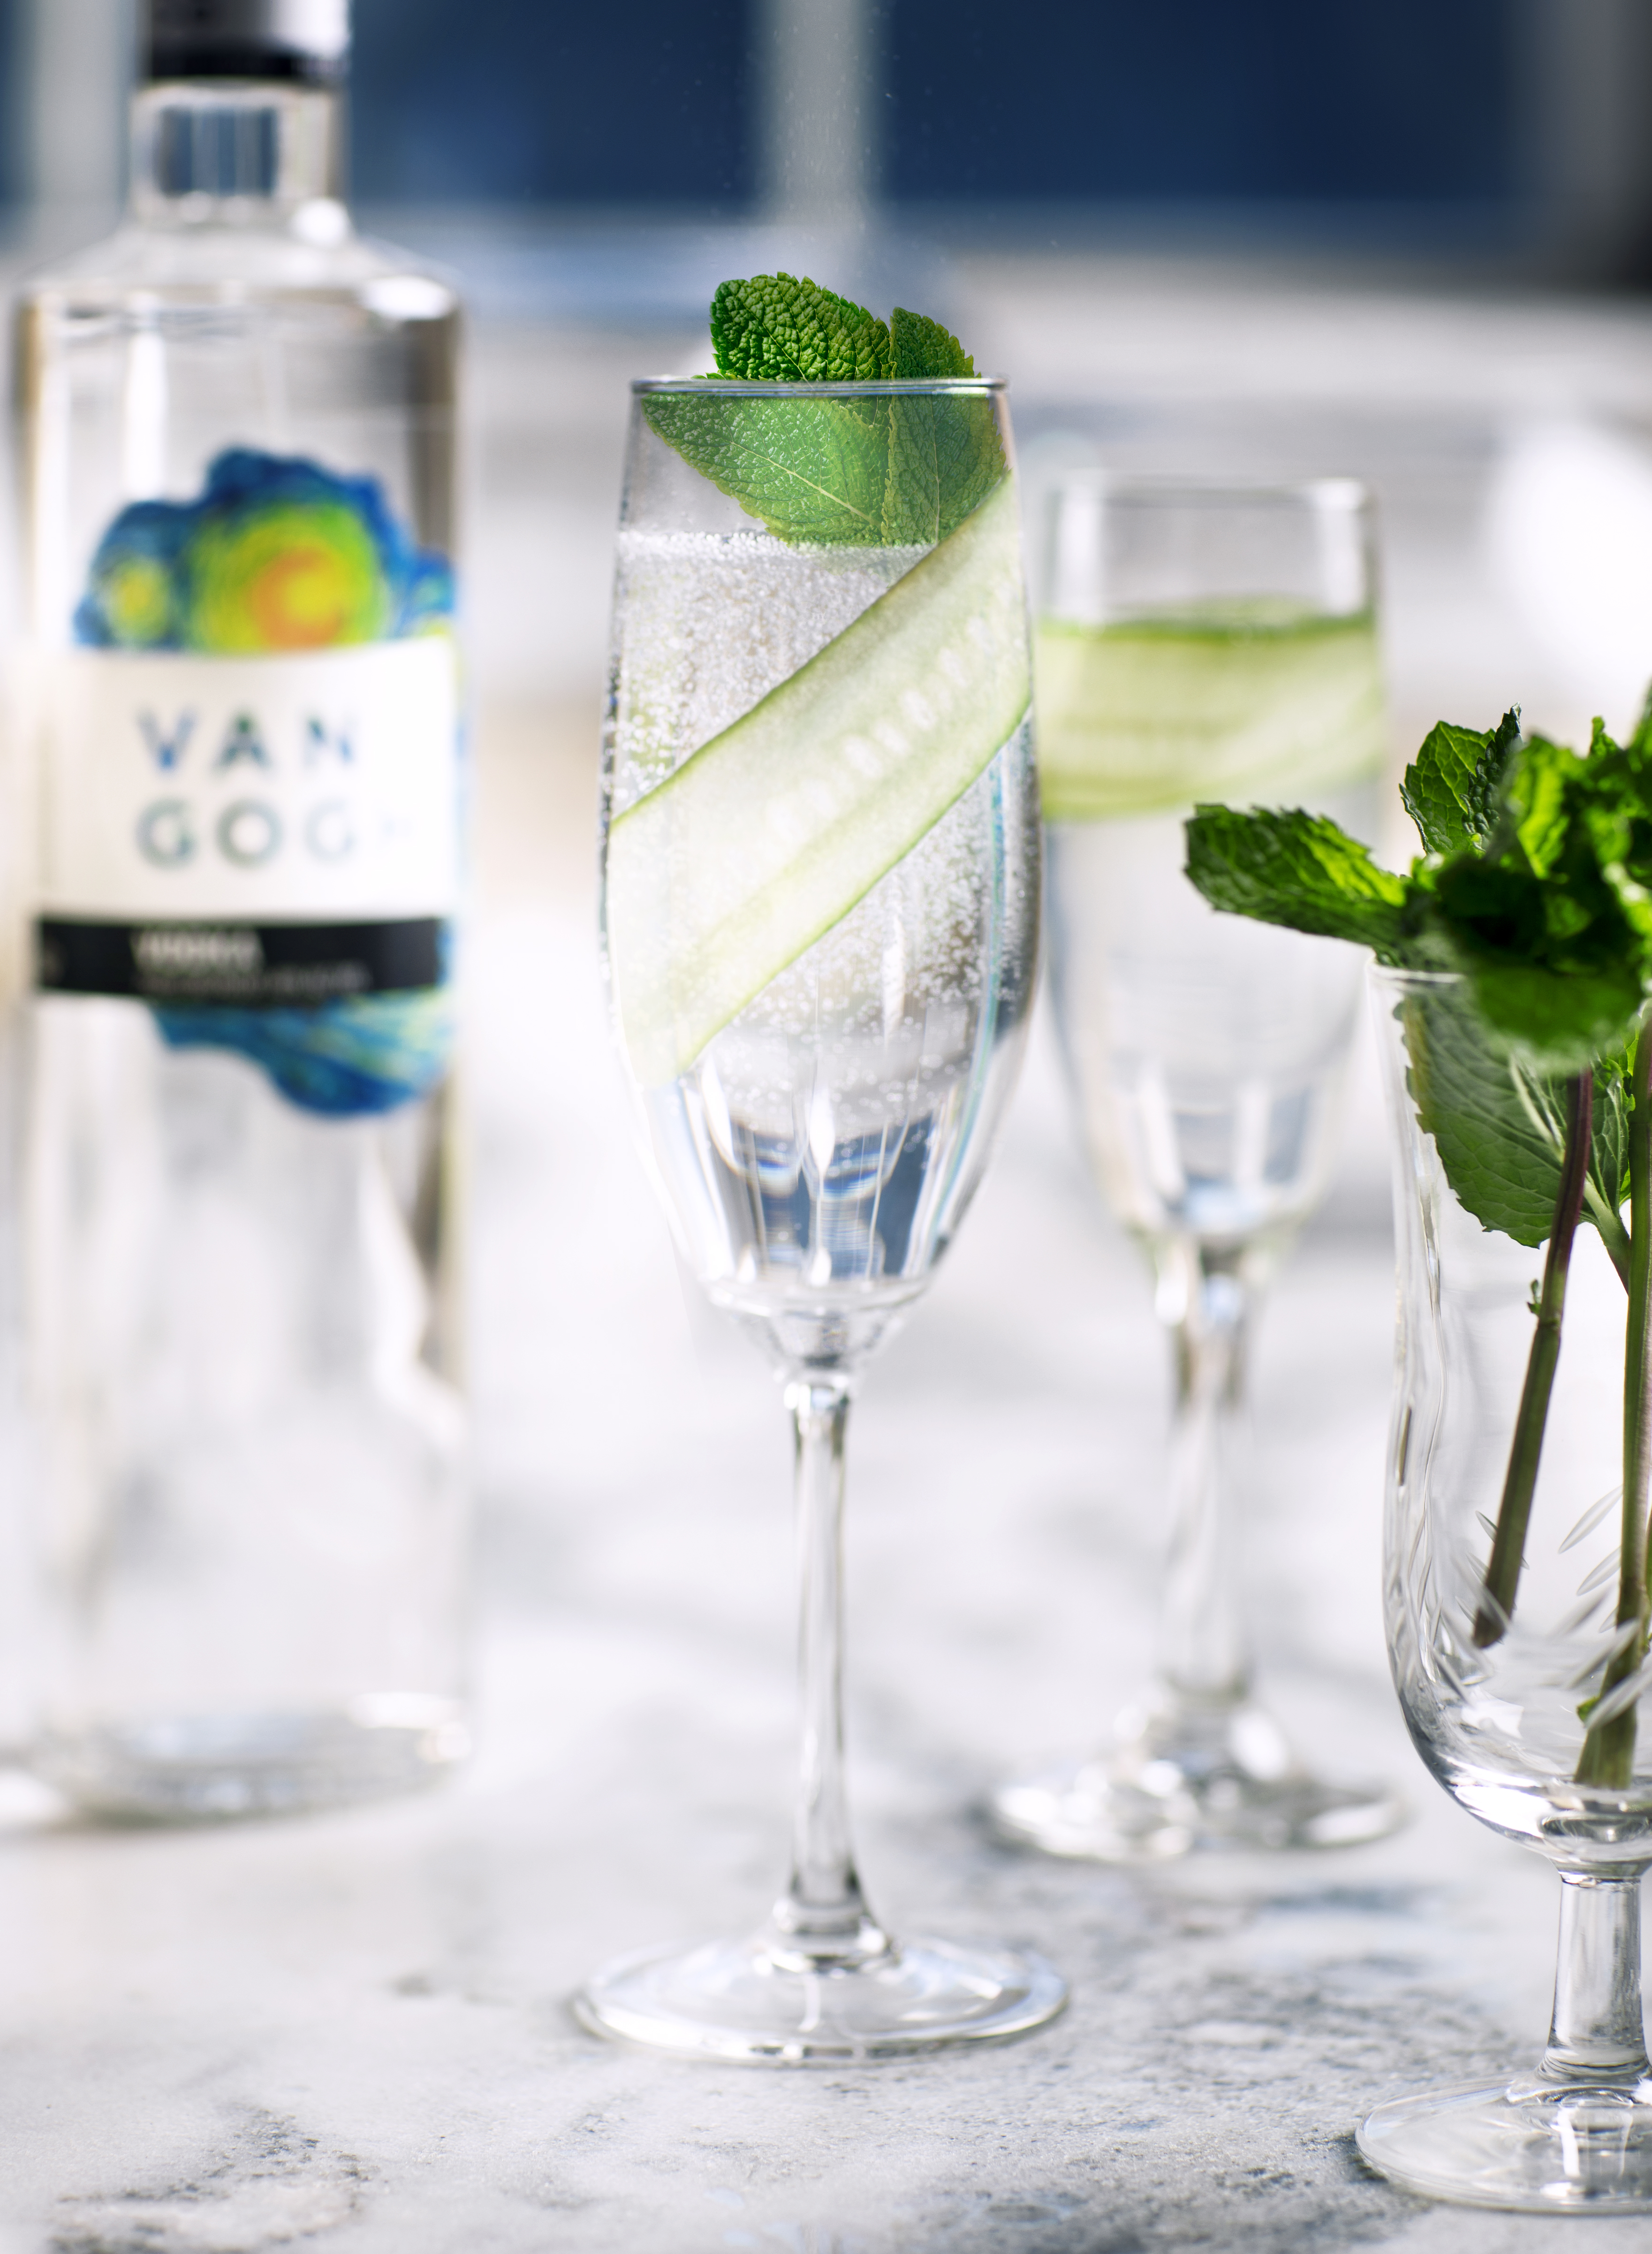 Muddle cucumber and mint in the sour mix. Add Van Gogh Vodka with ice and shake well. Strain into a chilled martini glass or flute, top with club soda. Garnish with a long thin strip of cucumber.